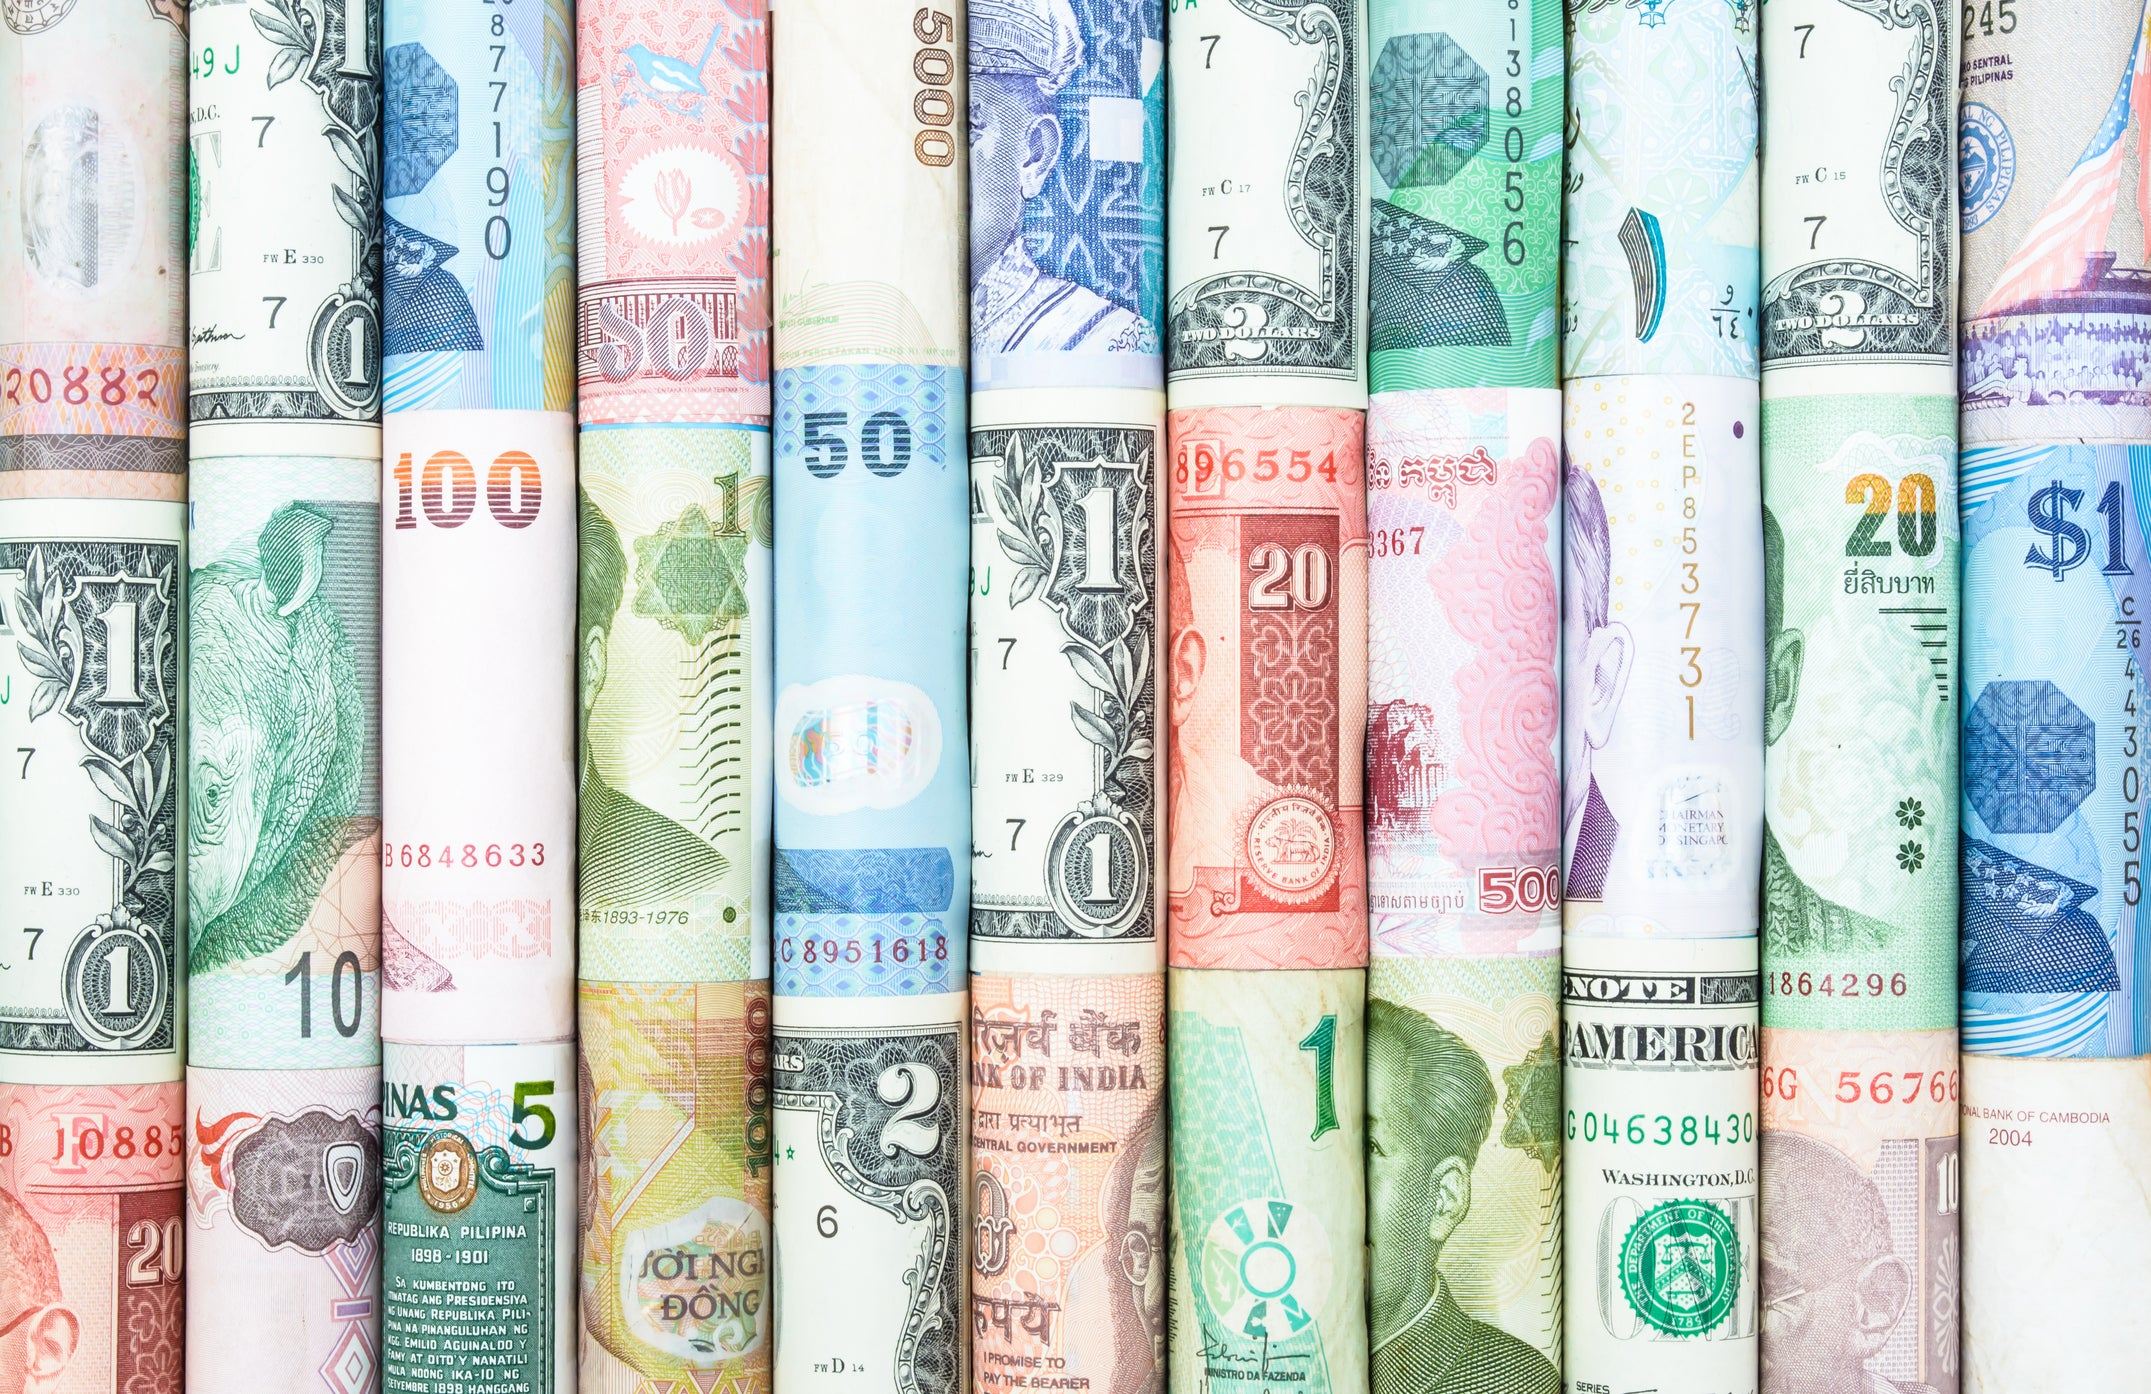 Vanguard Prime Money Market Fund A Good Place To Keep Cash The